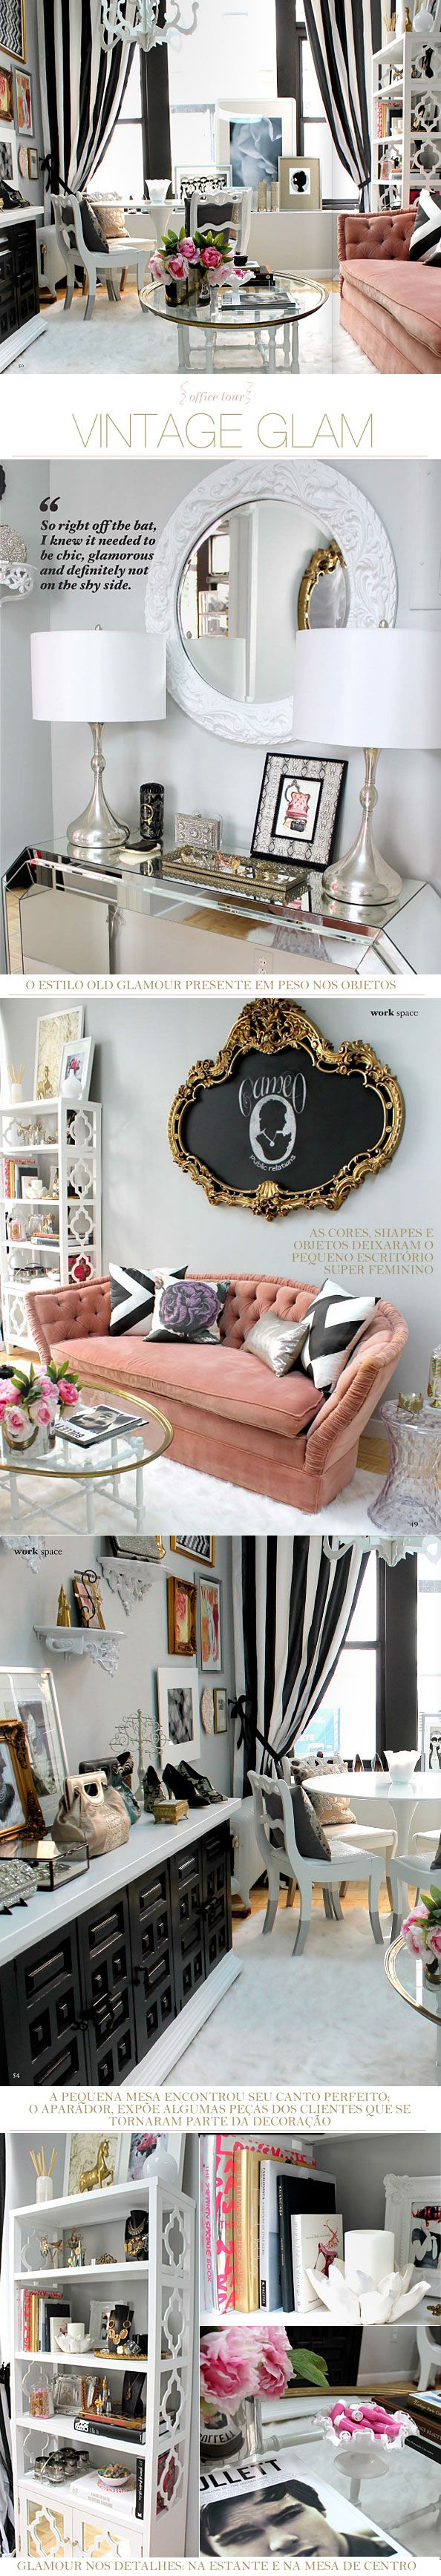 hollywood glam -wow! this is fabulous! totally goes with the current special edition line from lia sophia that is 20s art deco great Gatsby inspired! love it!